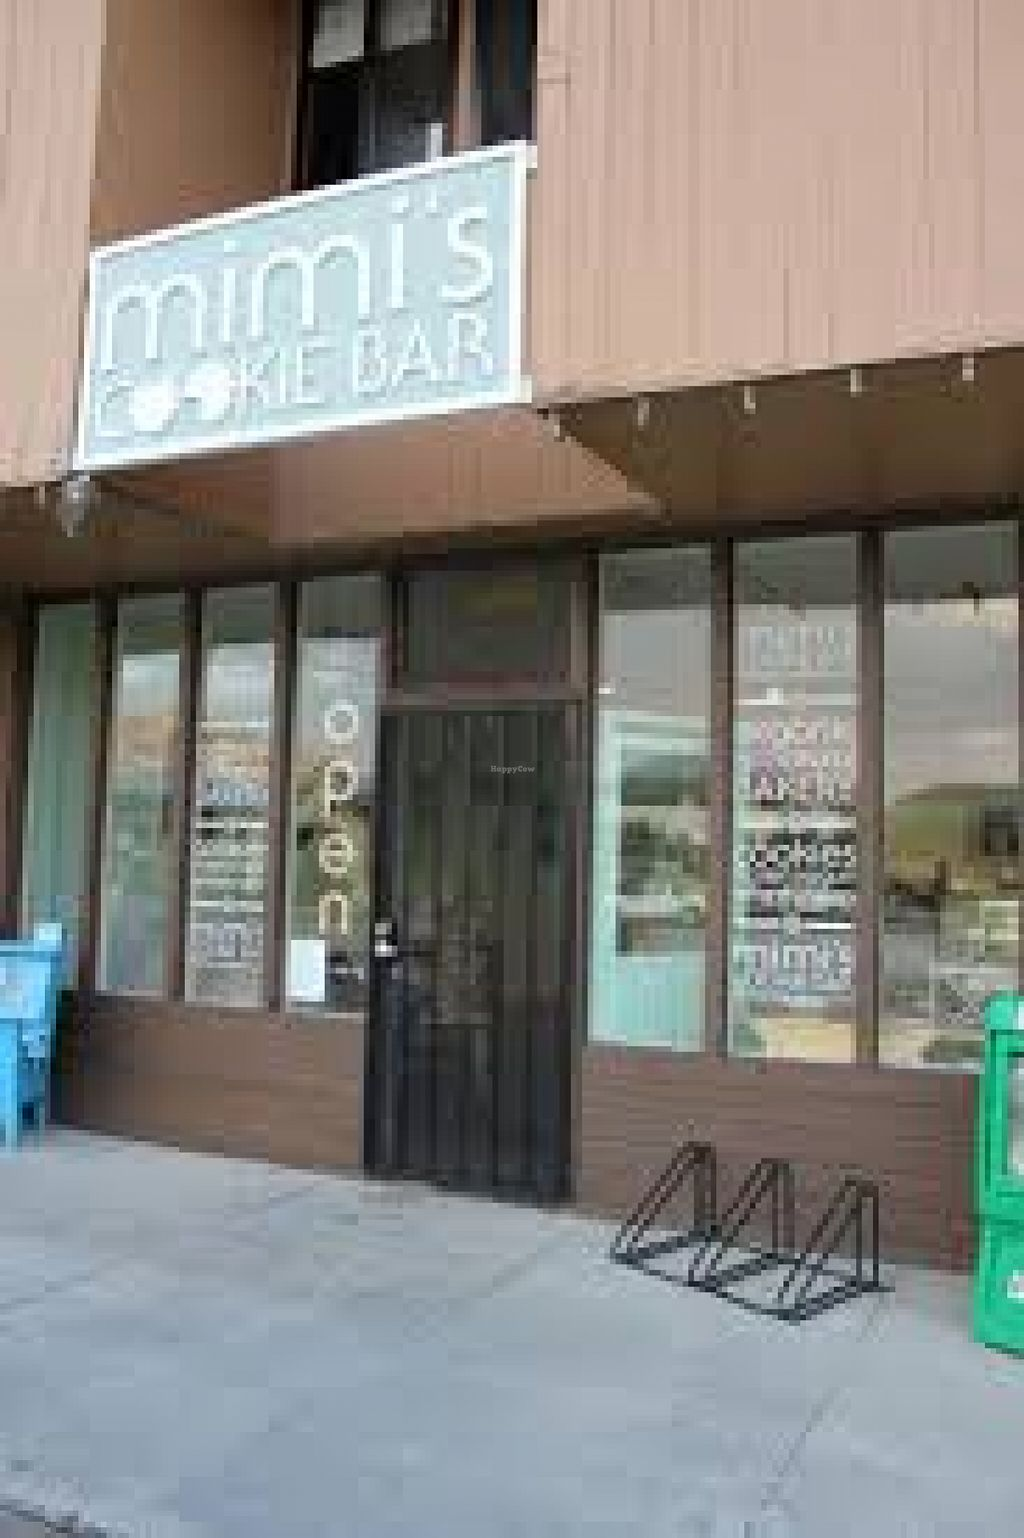 """Photo of Mimi's Cookie Bar  by <a href=""""/members/profile/Travel%20Roots"""">Travel Roots</a> <br/>The outside of the bakery <br/> August 8, 2015  - <a href='/contact/abuse/image/61497/112749'>Report</a>"""